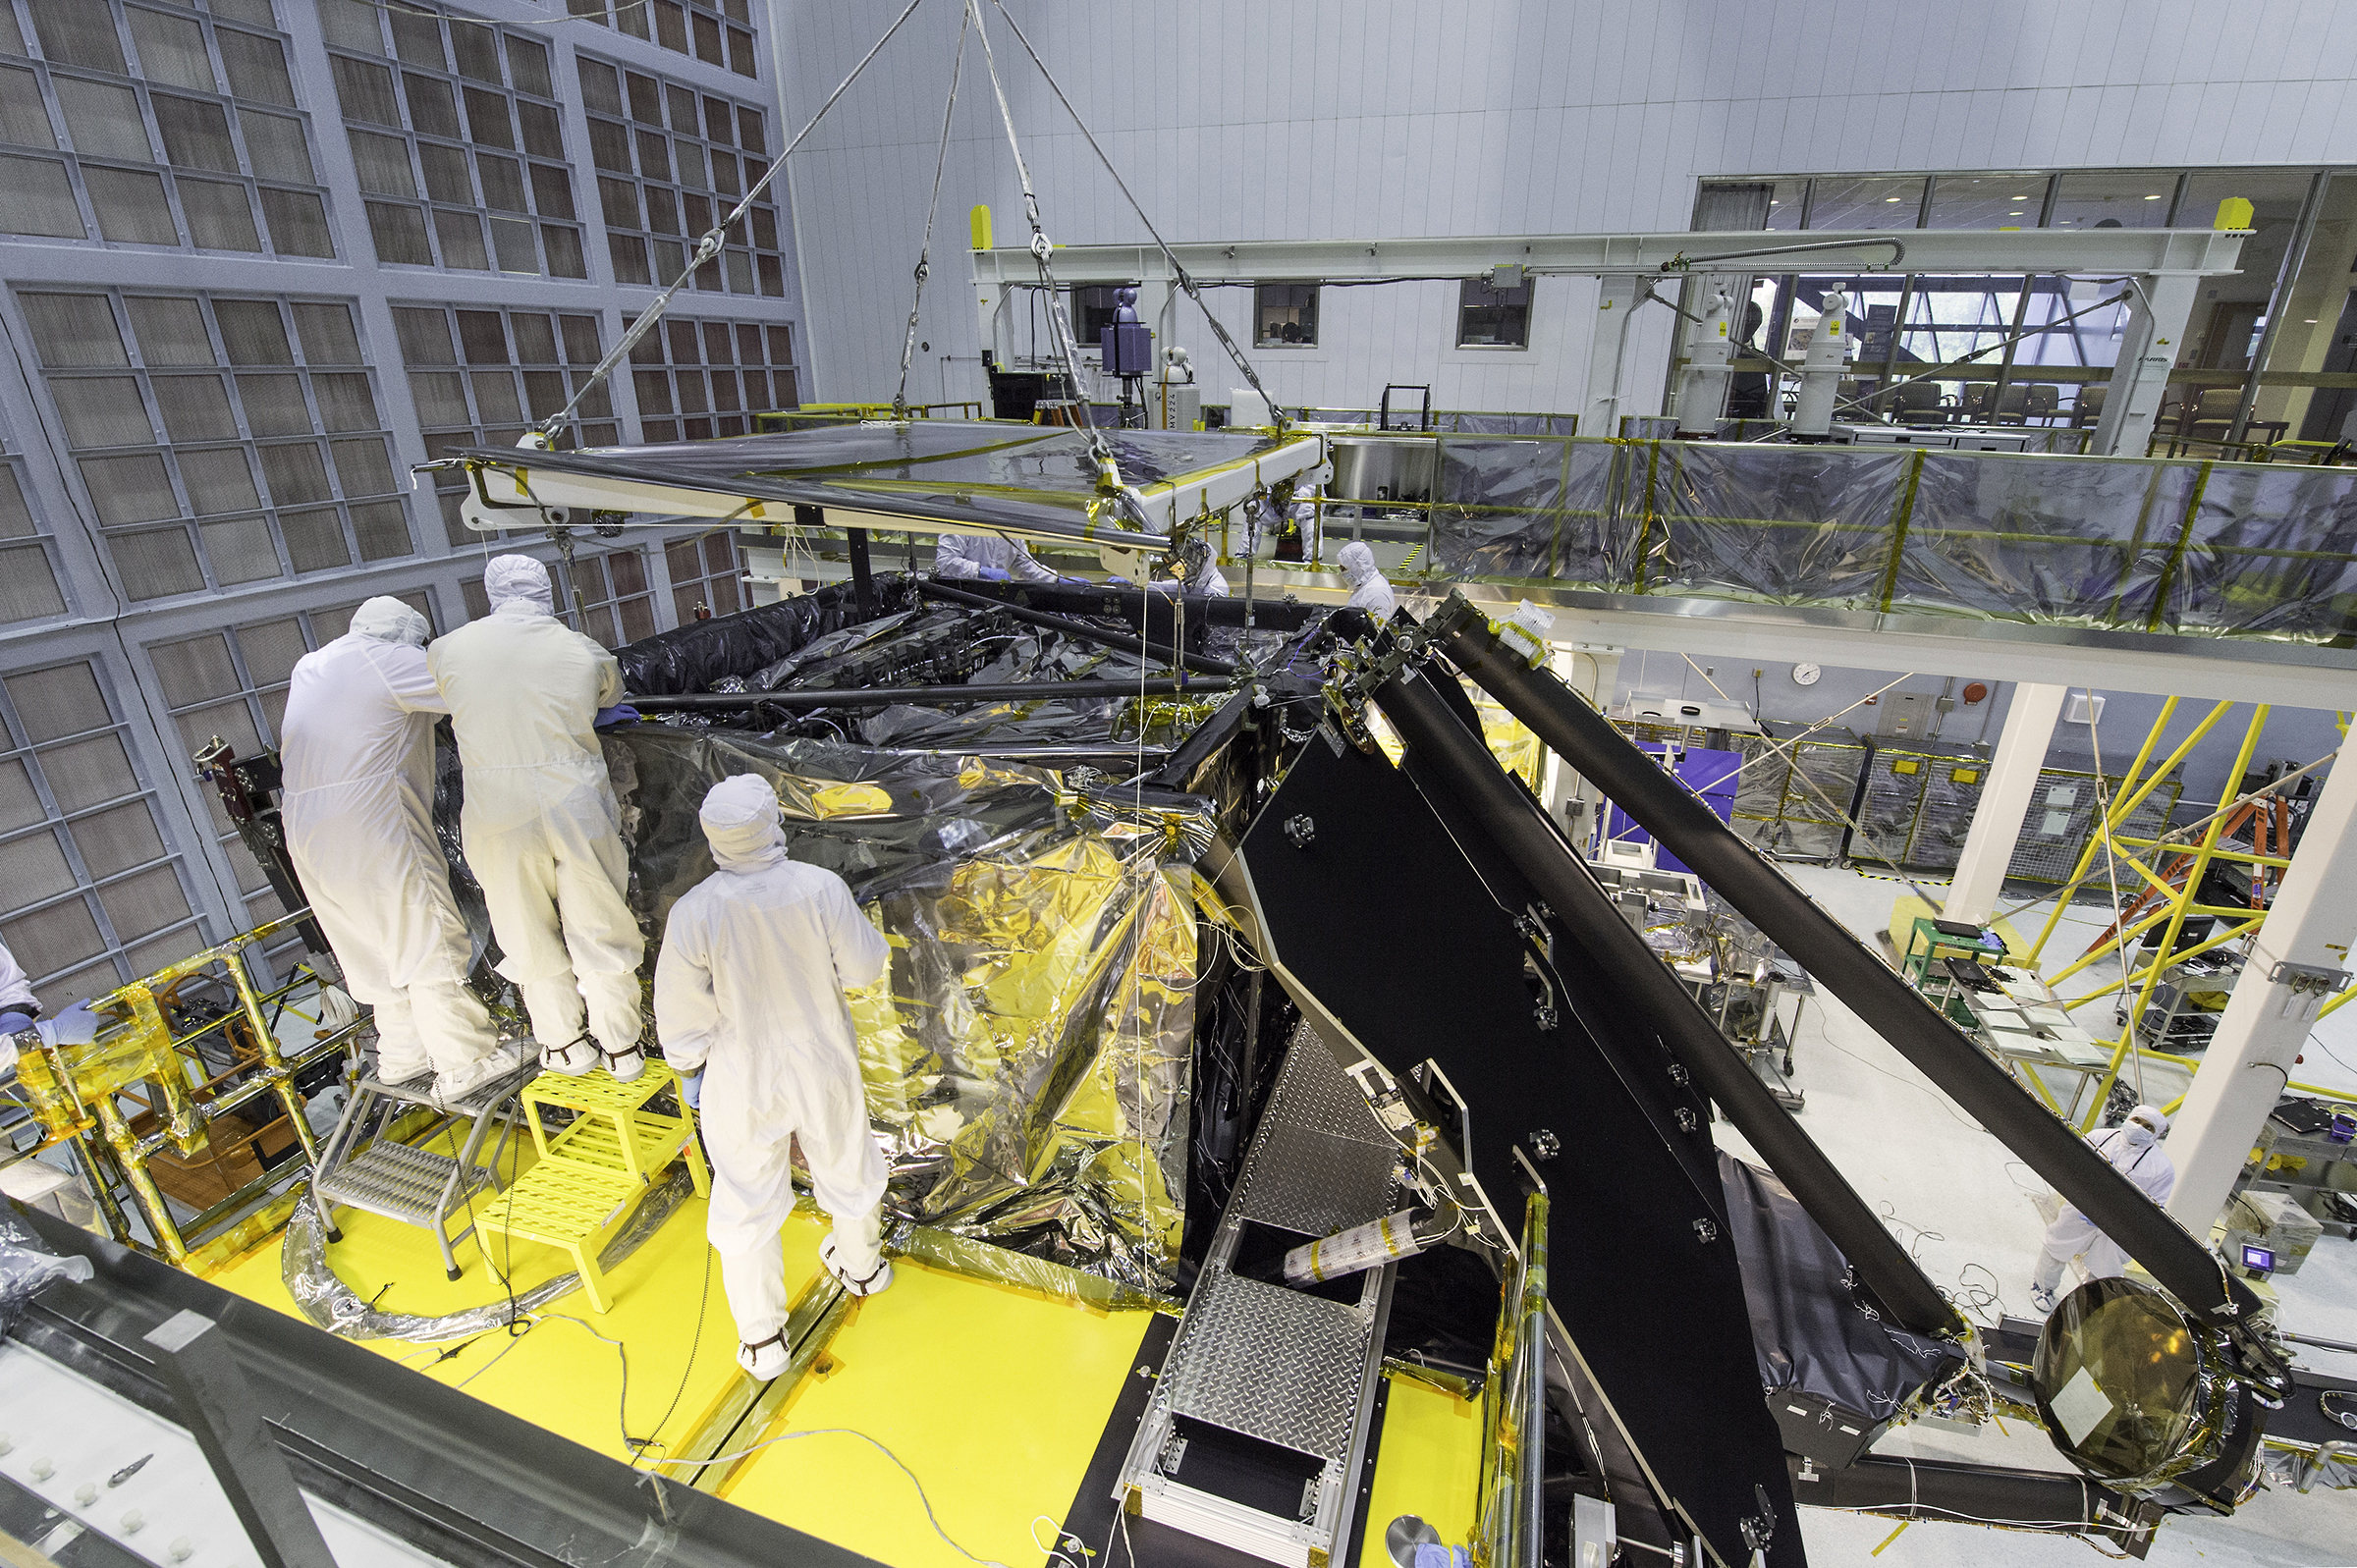 JWST Inside the Clean Room